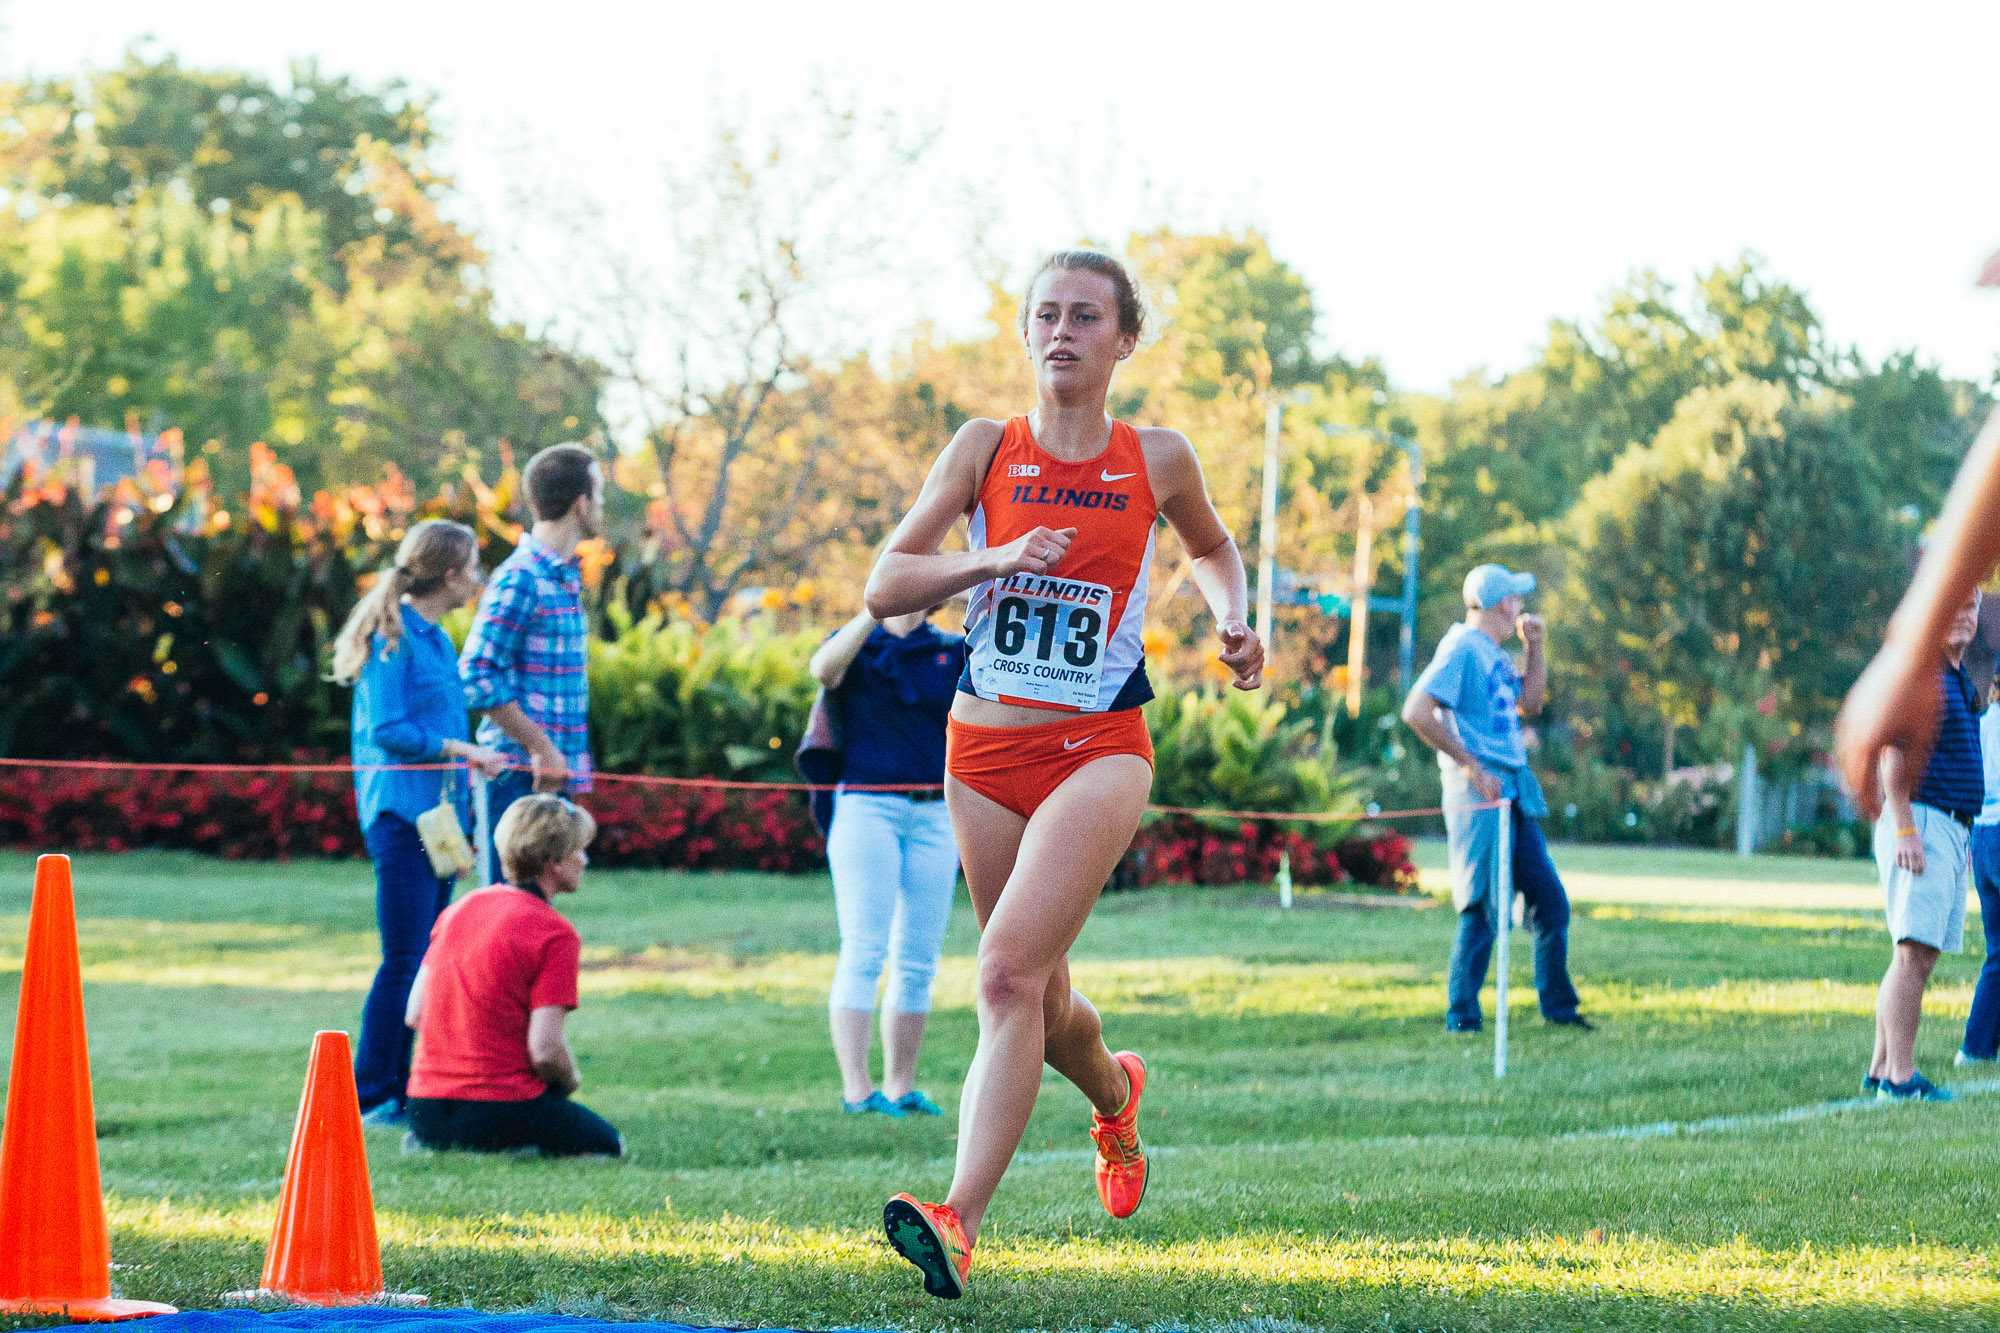 Illinois to combine track and field and cross-country ...